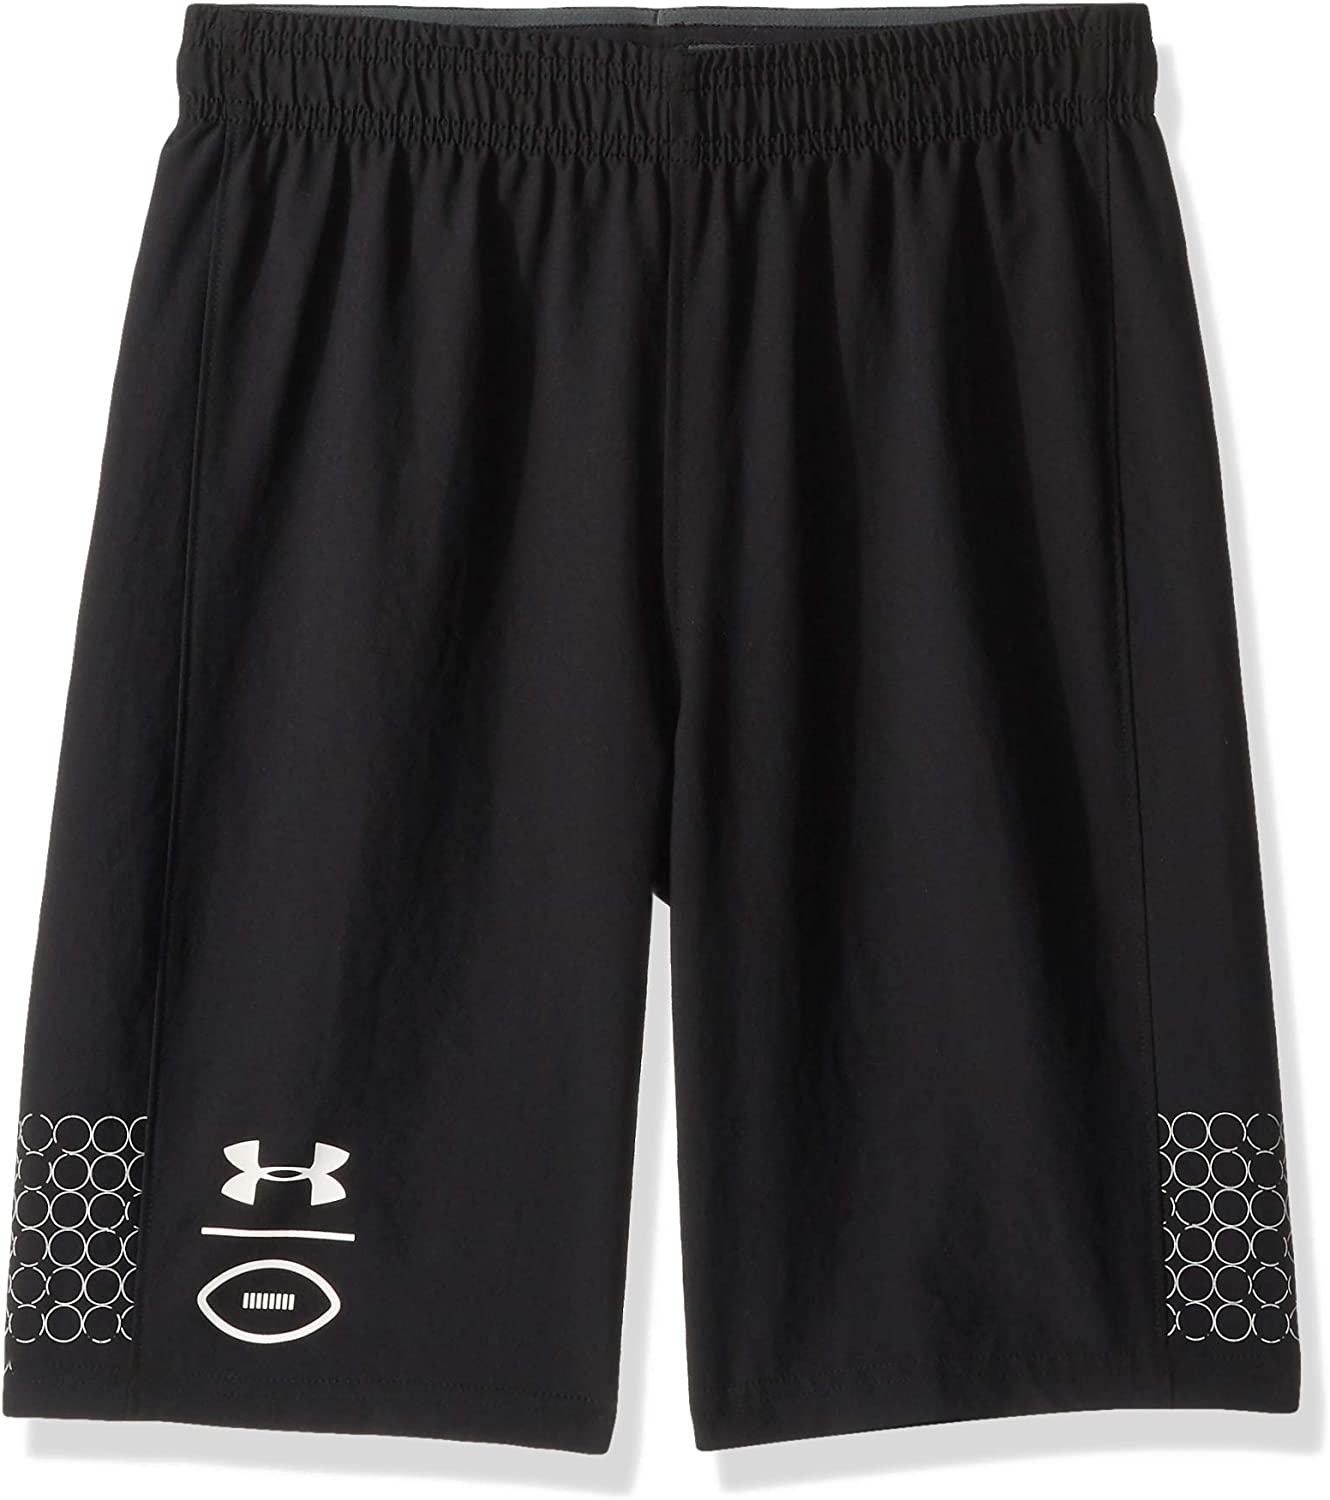 gran variedad de estilos nuevo alto apariencia estética Amazon.com : Under Armour Boys' Flag Football Shorts : Clothing